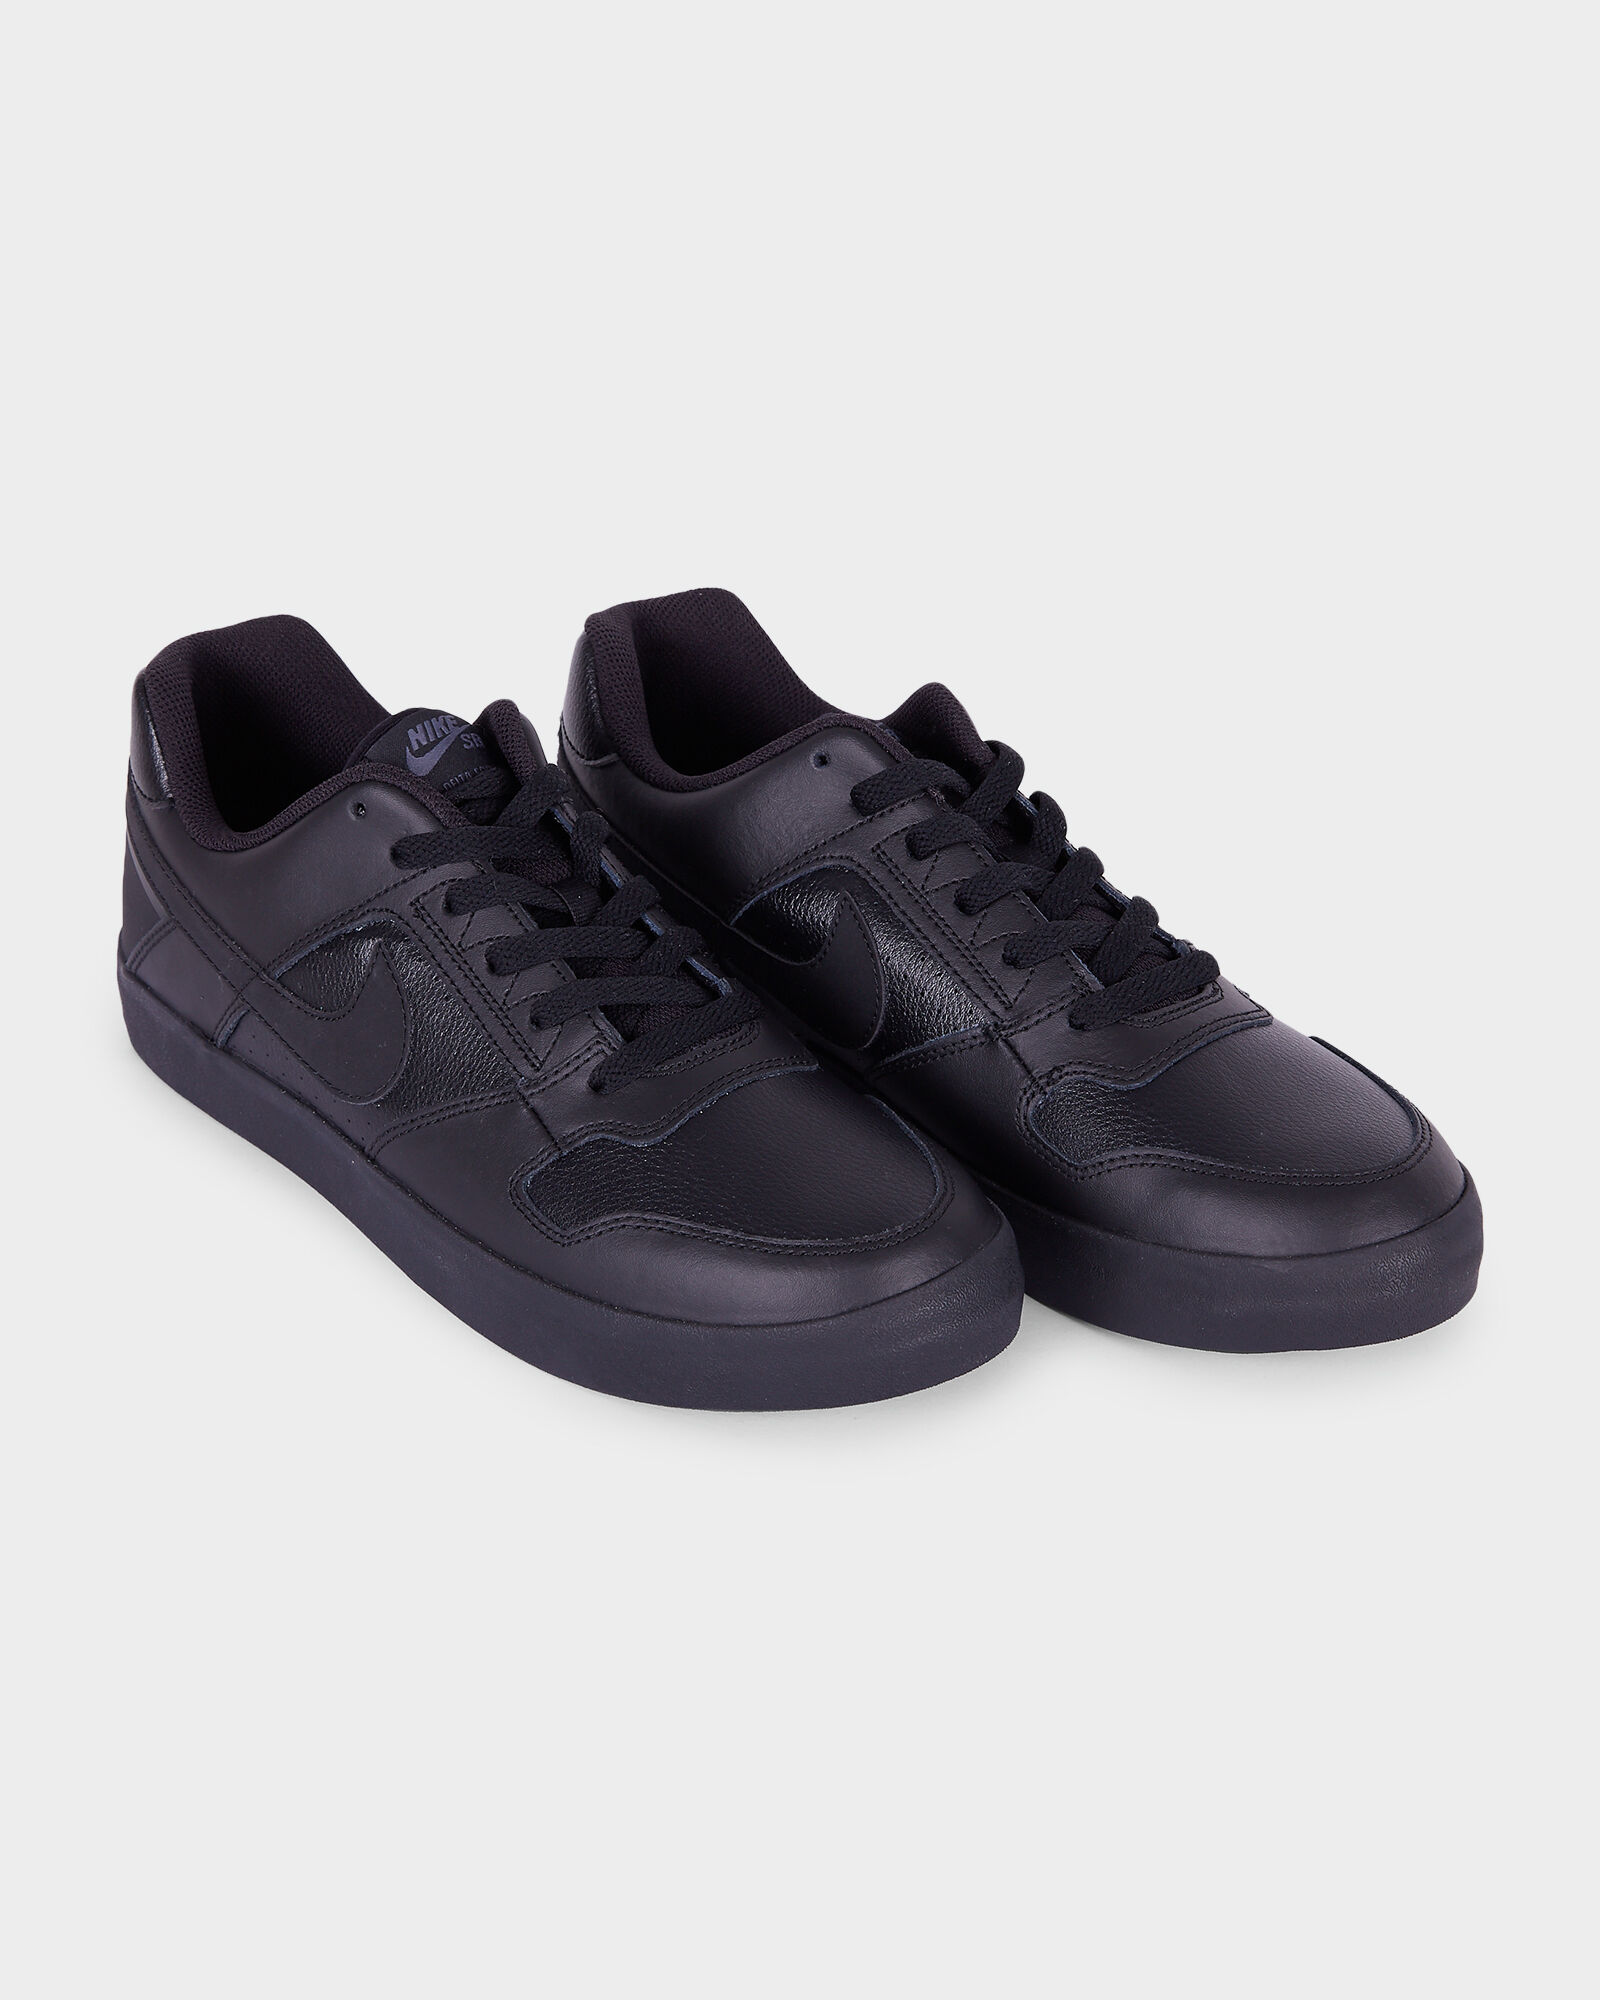 all black leather nike shoes